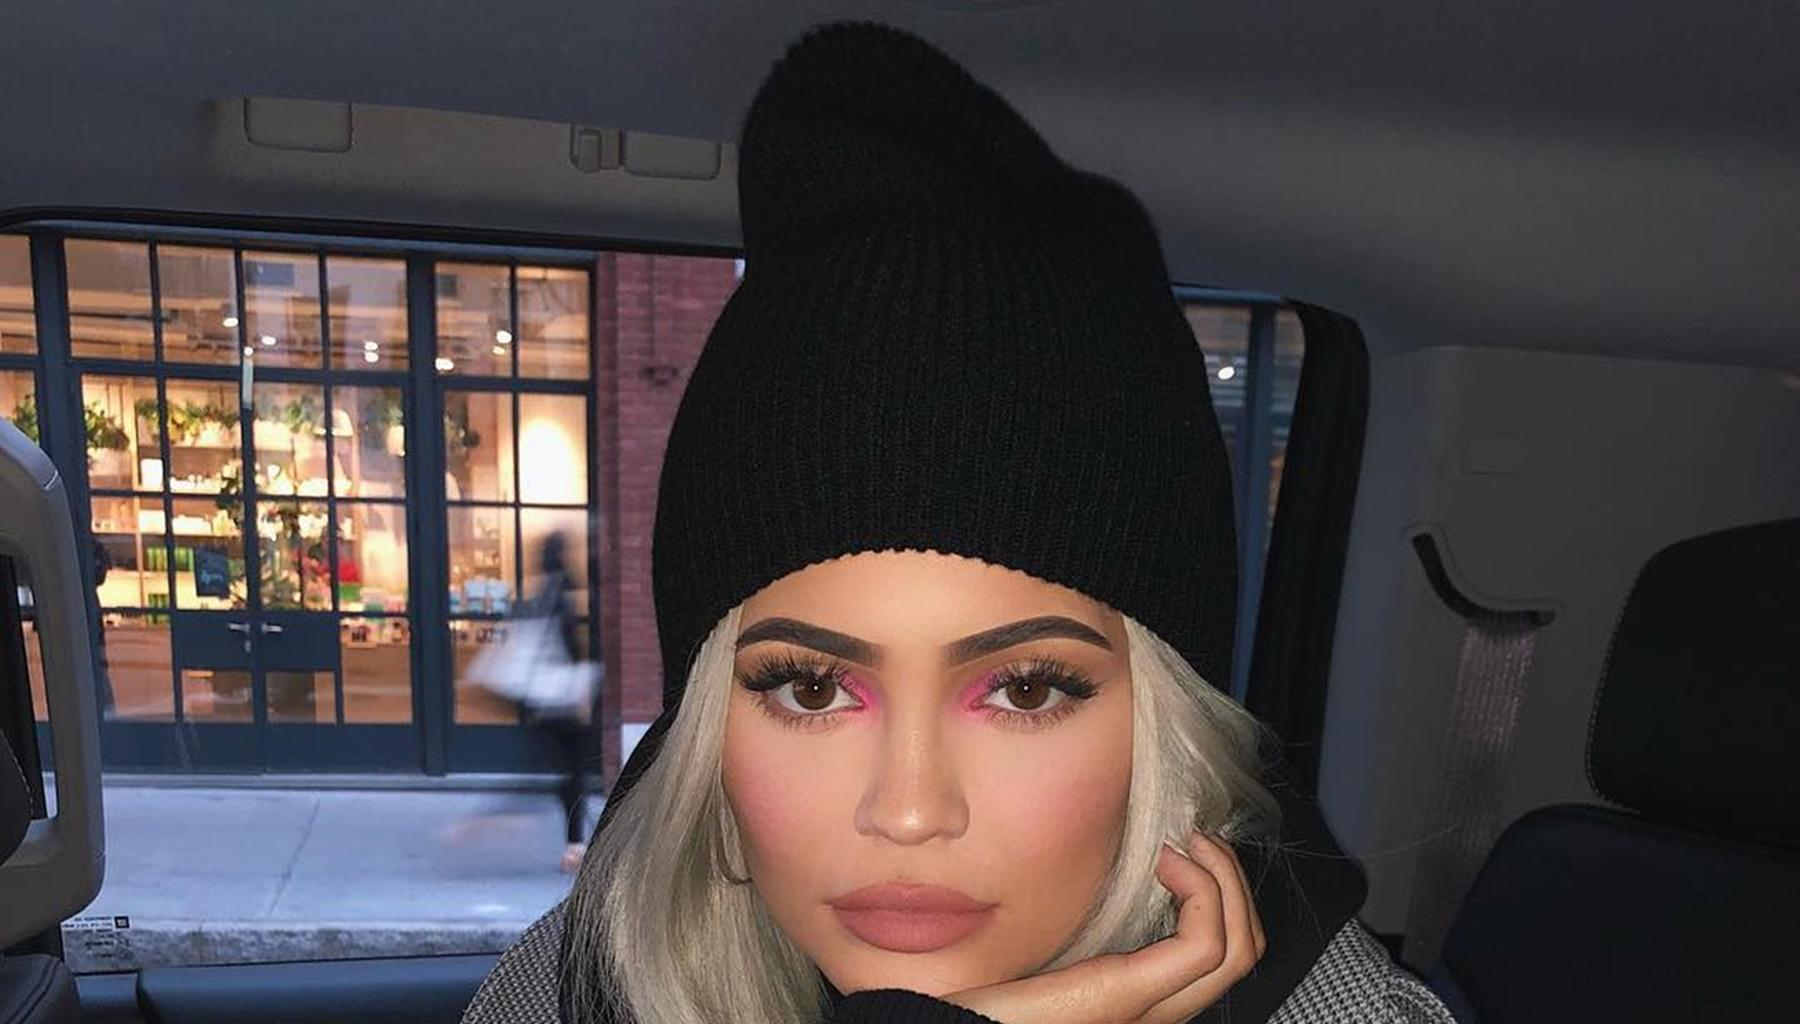 Travis Scott Tells Kylie Jenner That He Loves What He Sees After She Posts This Picture In A Sheer Dress